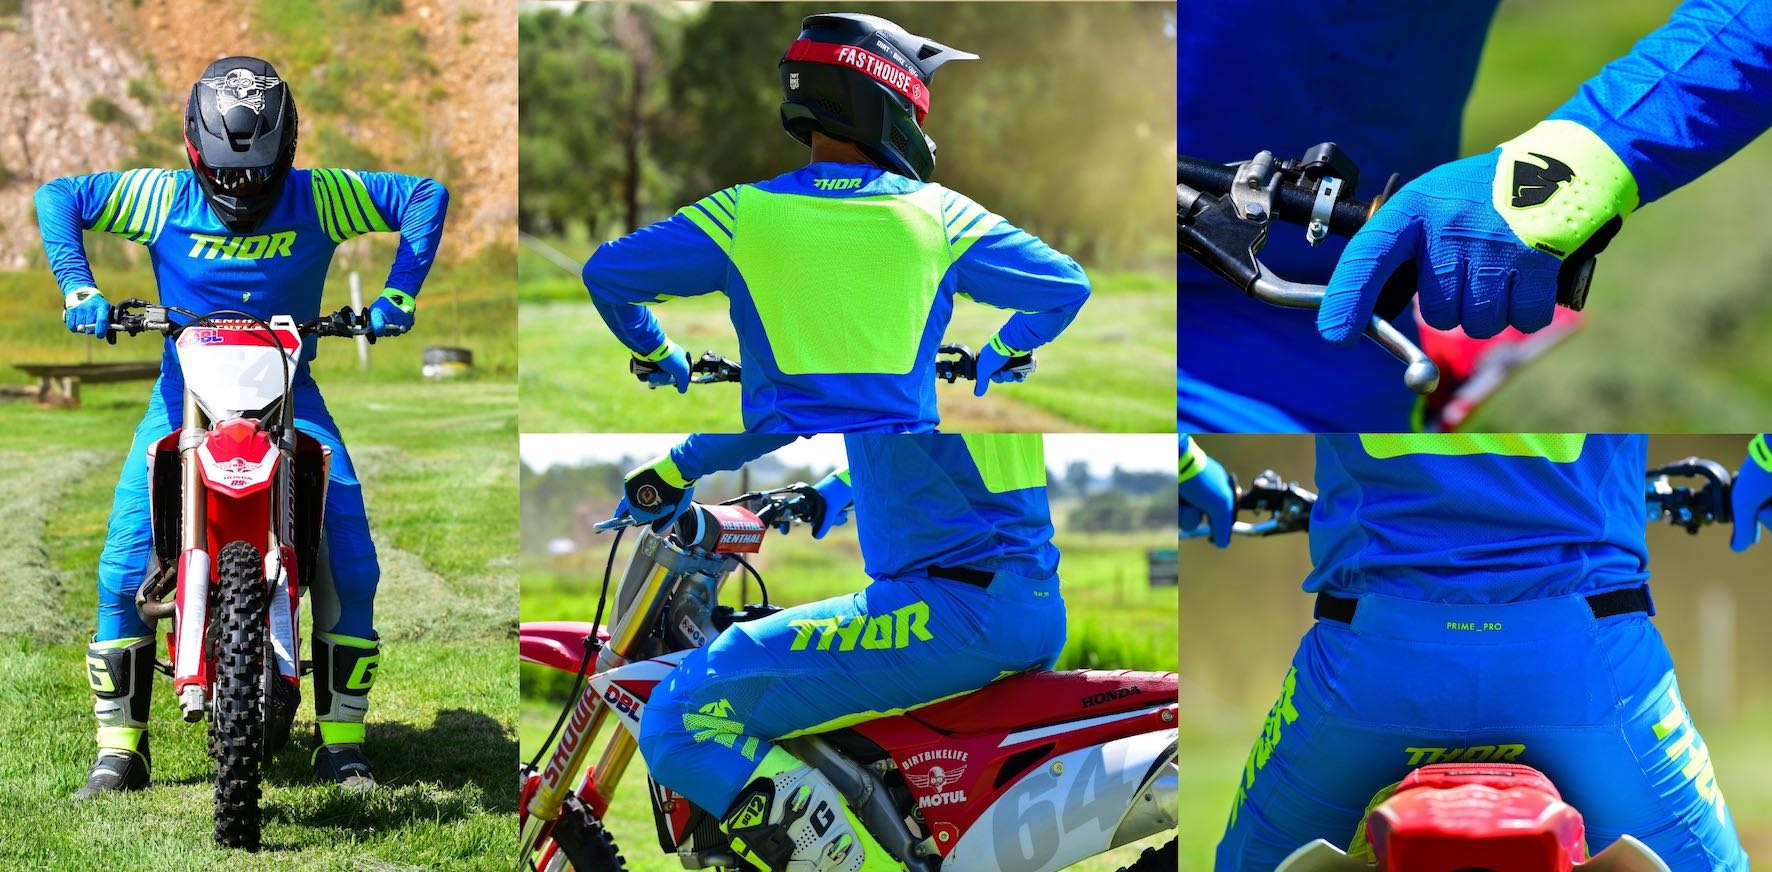 We test the 2020 Thor MX Prime Pro Motocross Racewear